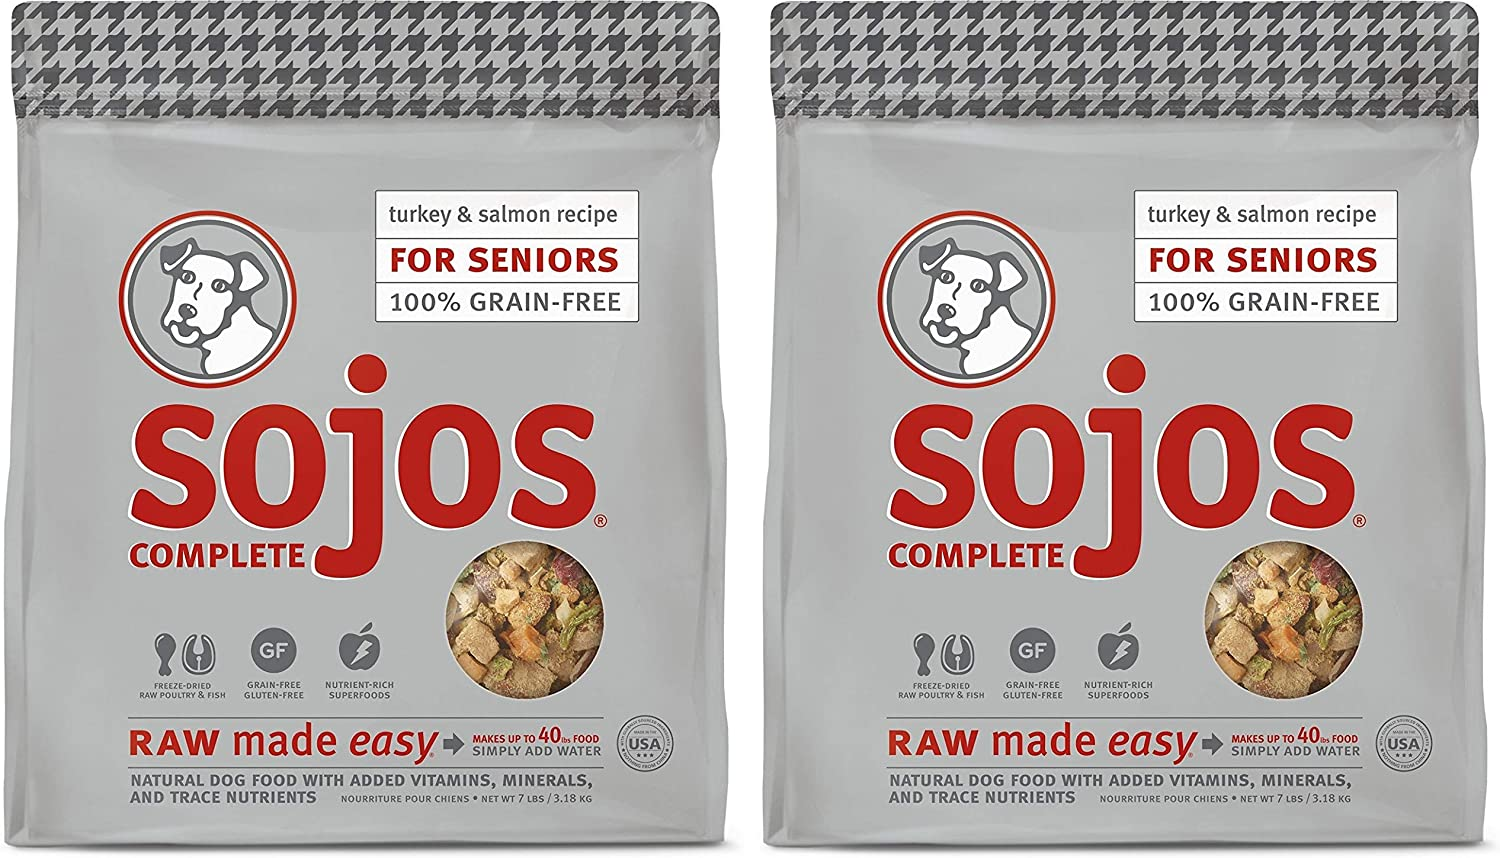 SOJOS 2 Pack of Turkey and Salmon Complete Raw Freeze-Dried Senior Dog Food, 7 Pounds Each, Grain- and Gluten-Free